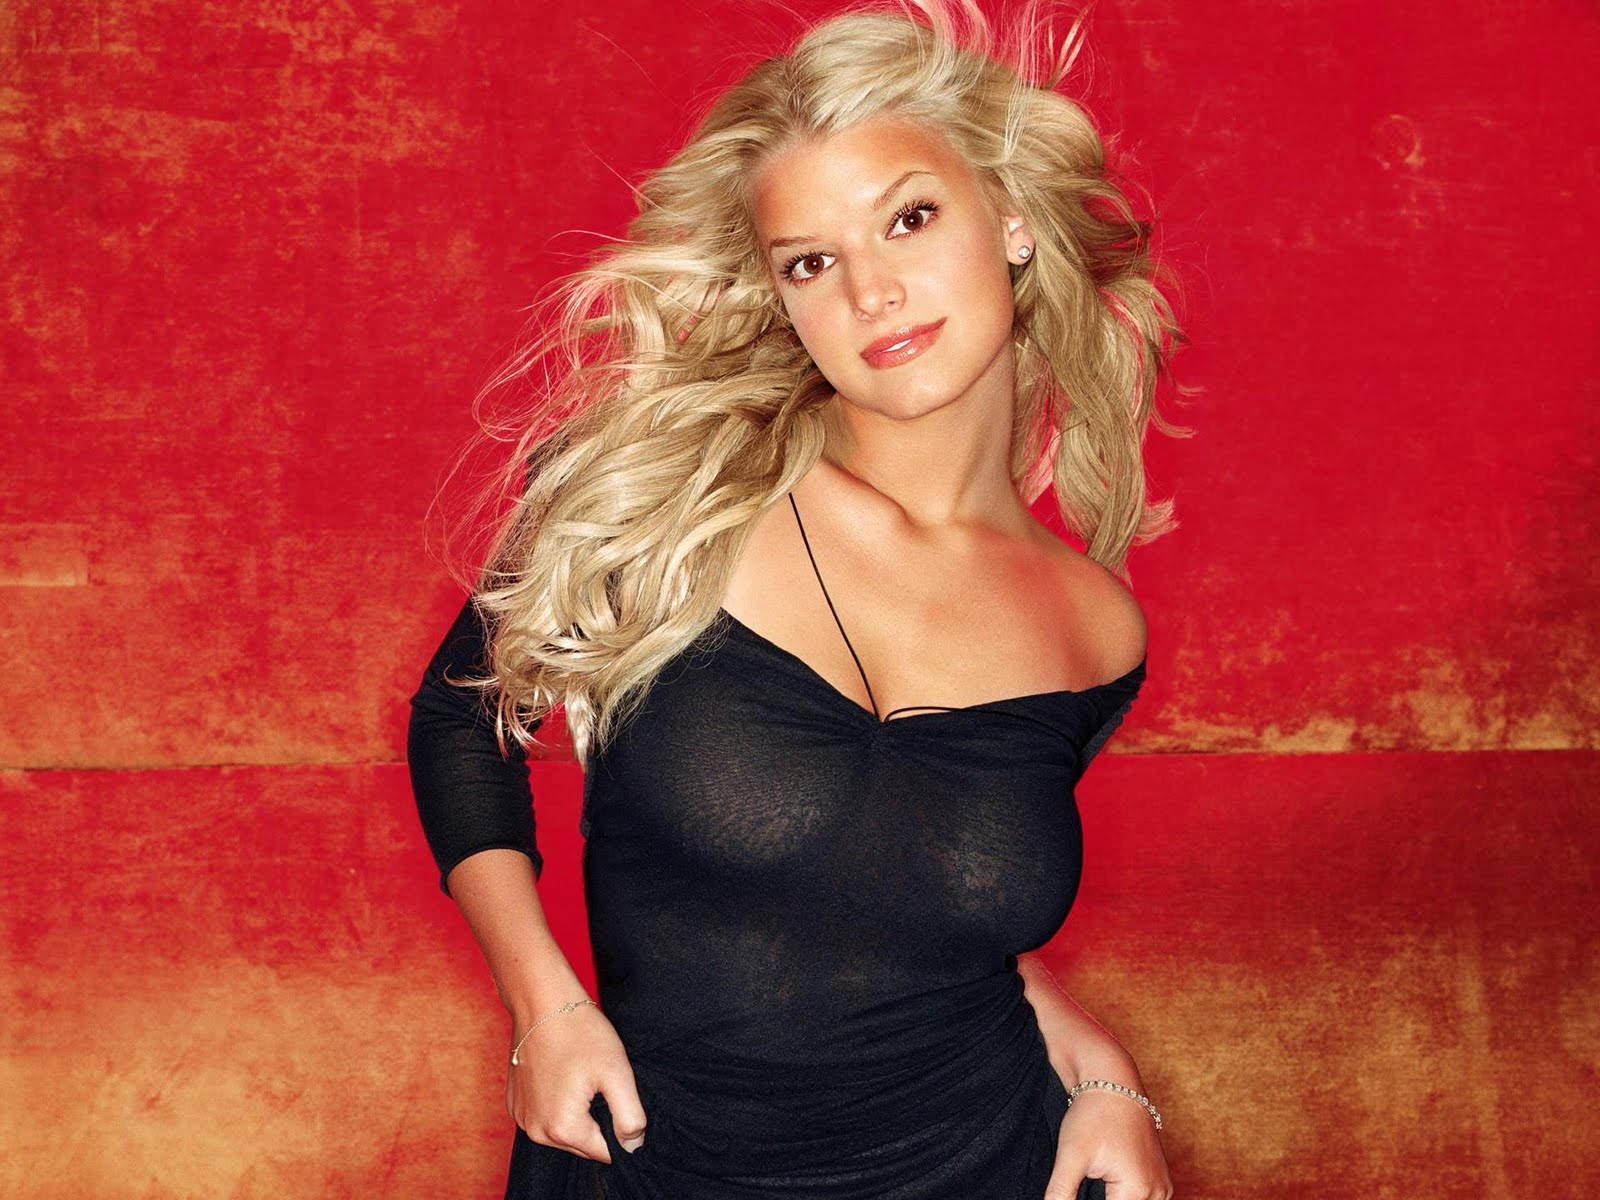 Jessica Simpson Wallpapers   Re Hairstyles Jessica Simpson Wallpapers 1600x1200